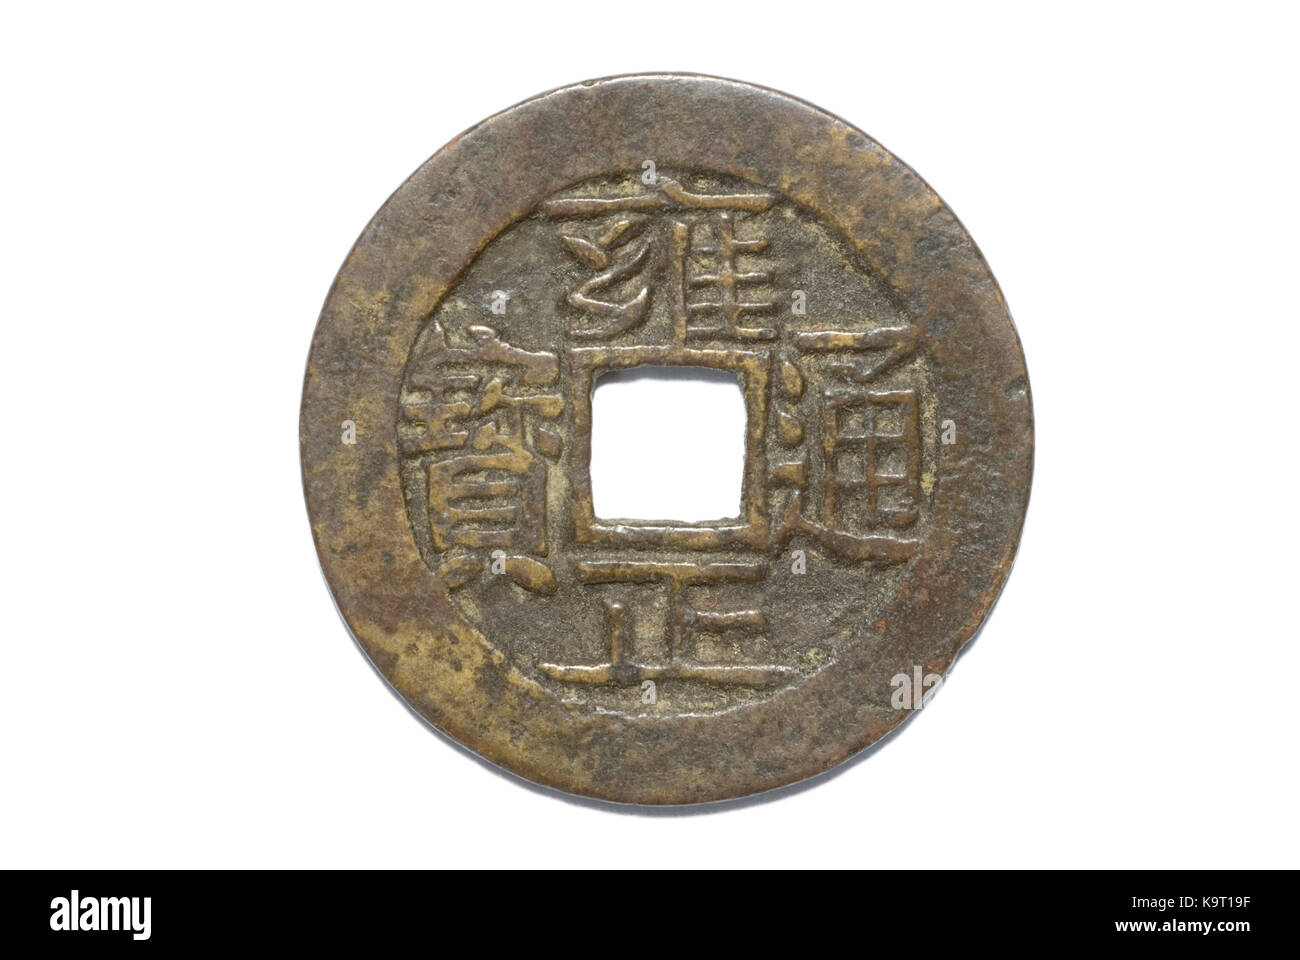 Manchu qing dynasty stock photos manchu qing dynasty stock images chinese coin of the yongzheng emperor 17221735 stock image biocorpaavc Choice Image